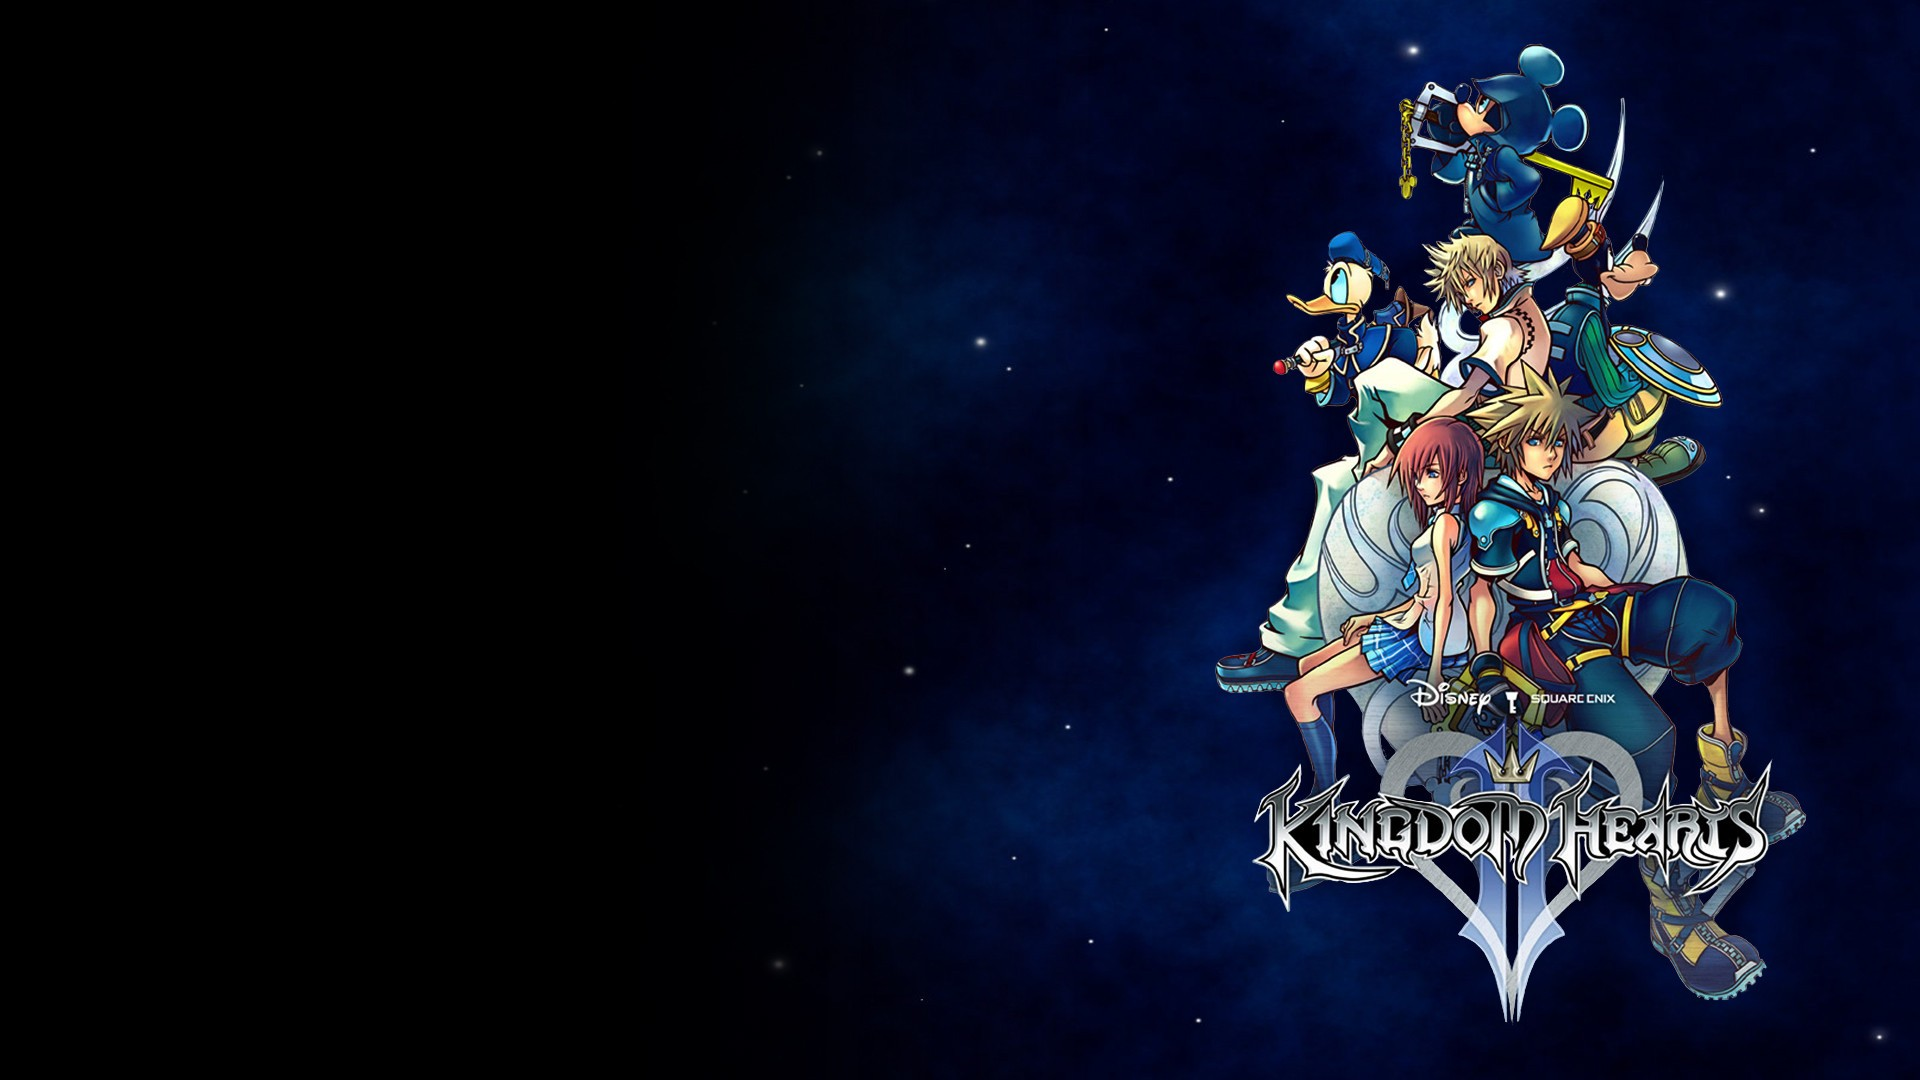 Kingdom Hearts Wallpaper ① Download Free Cool Hd Backgrounds For